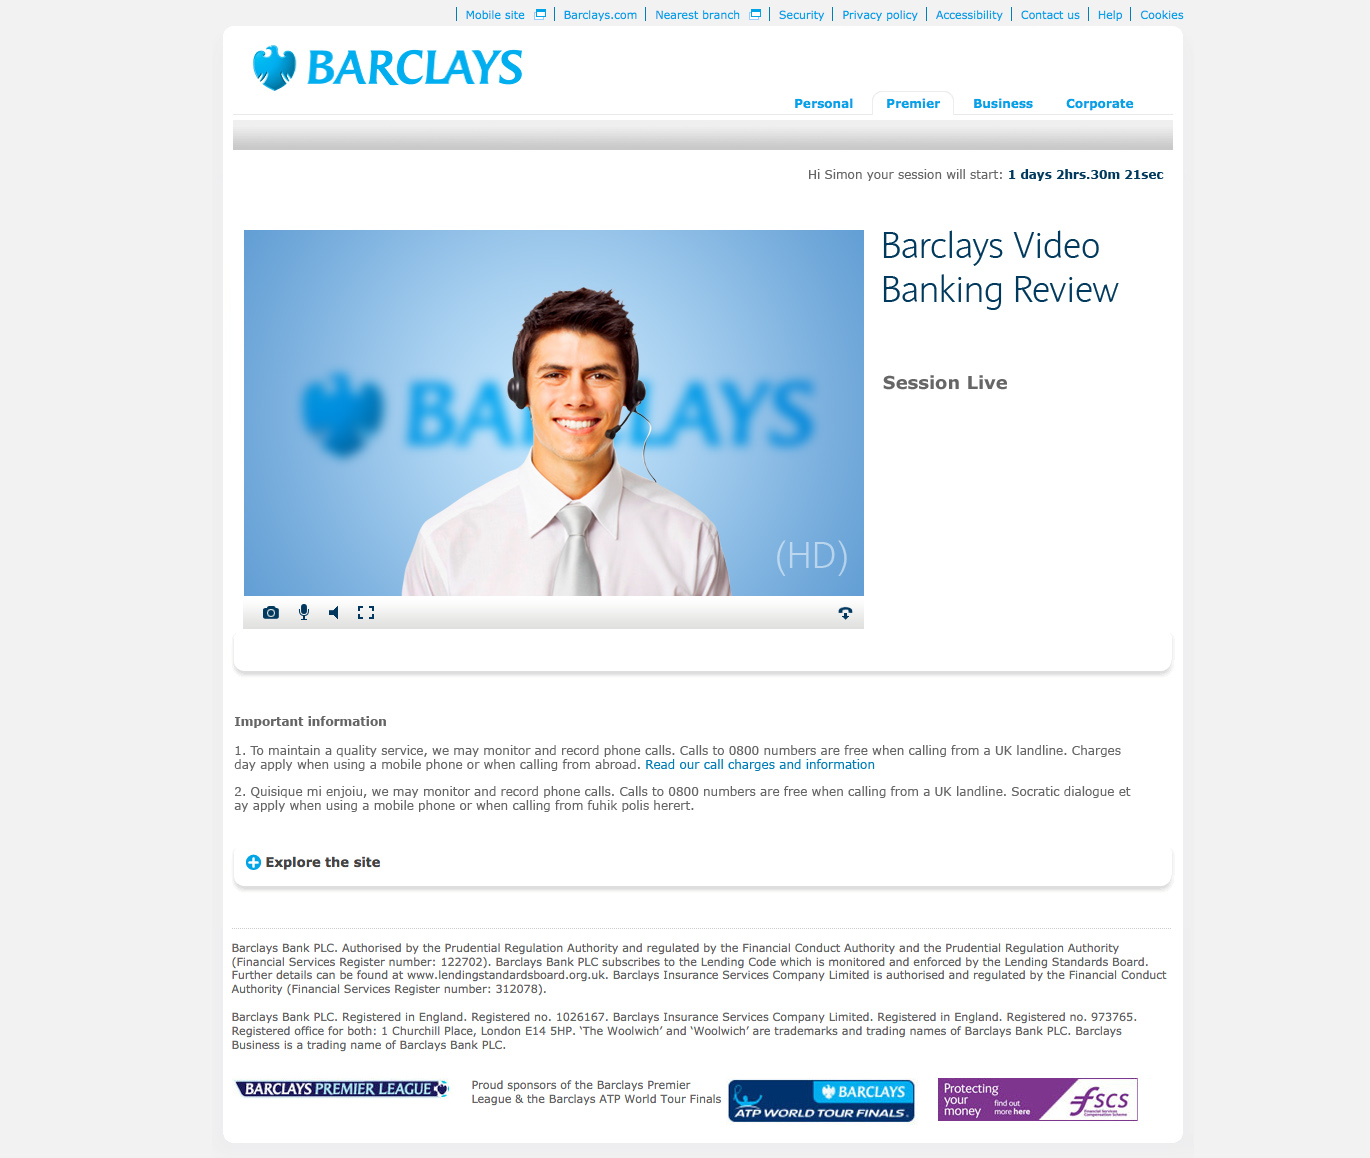 barclays session live